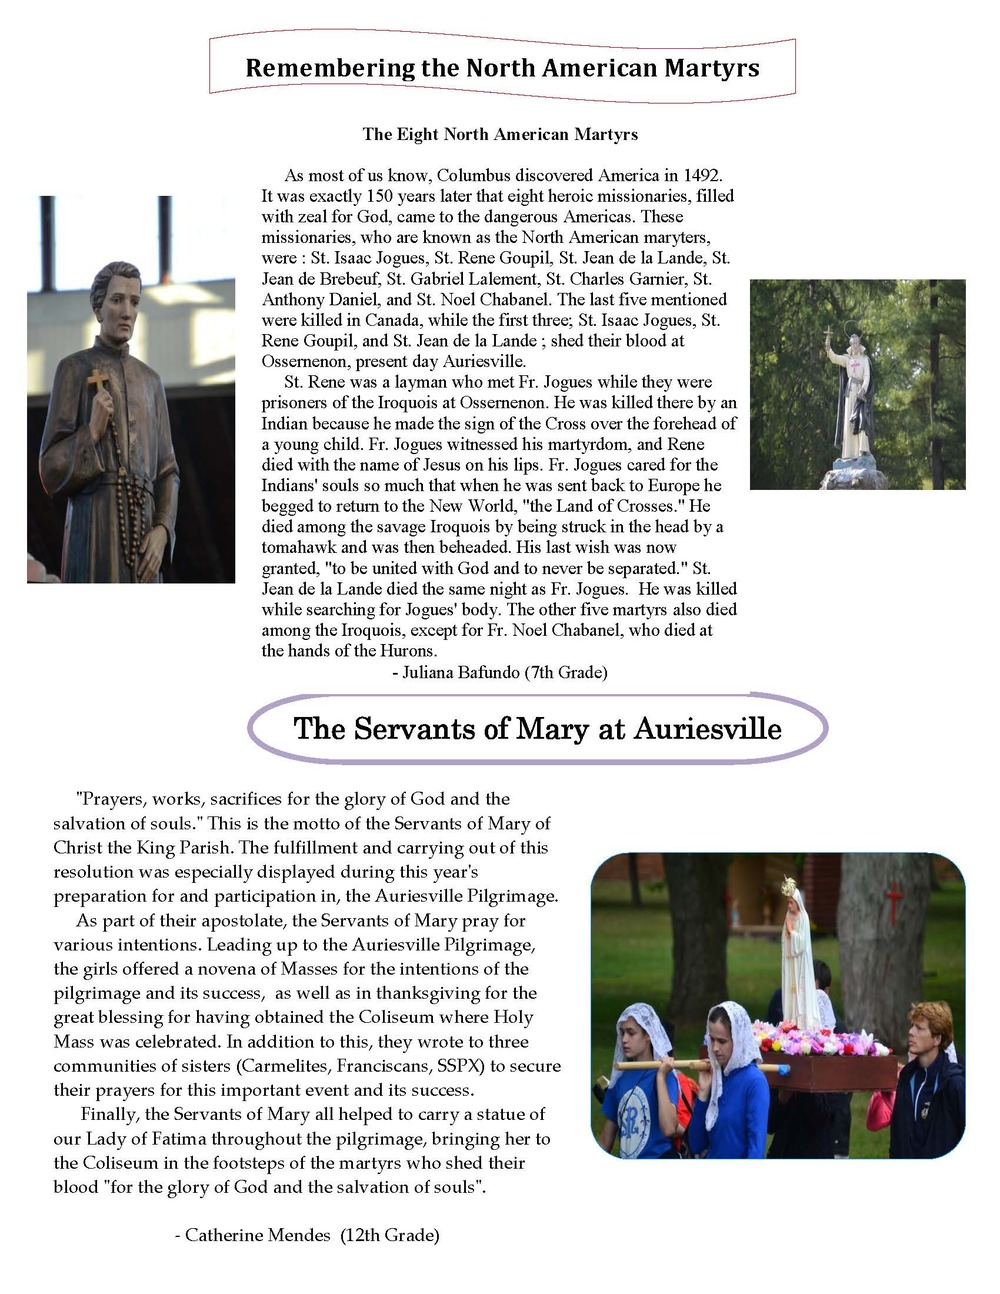 Serve Christ and Reign Special Edition Auriesville  2015_Page_6.jpg